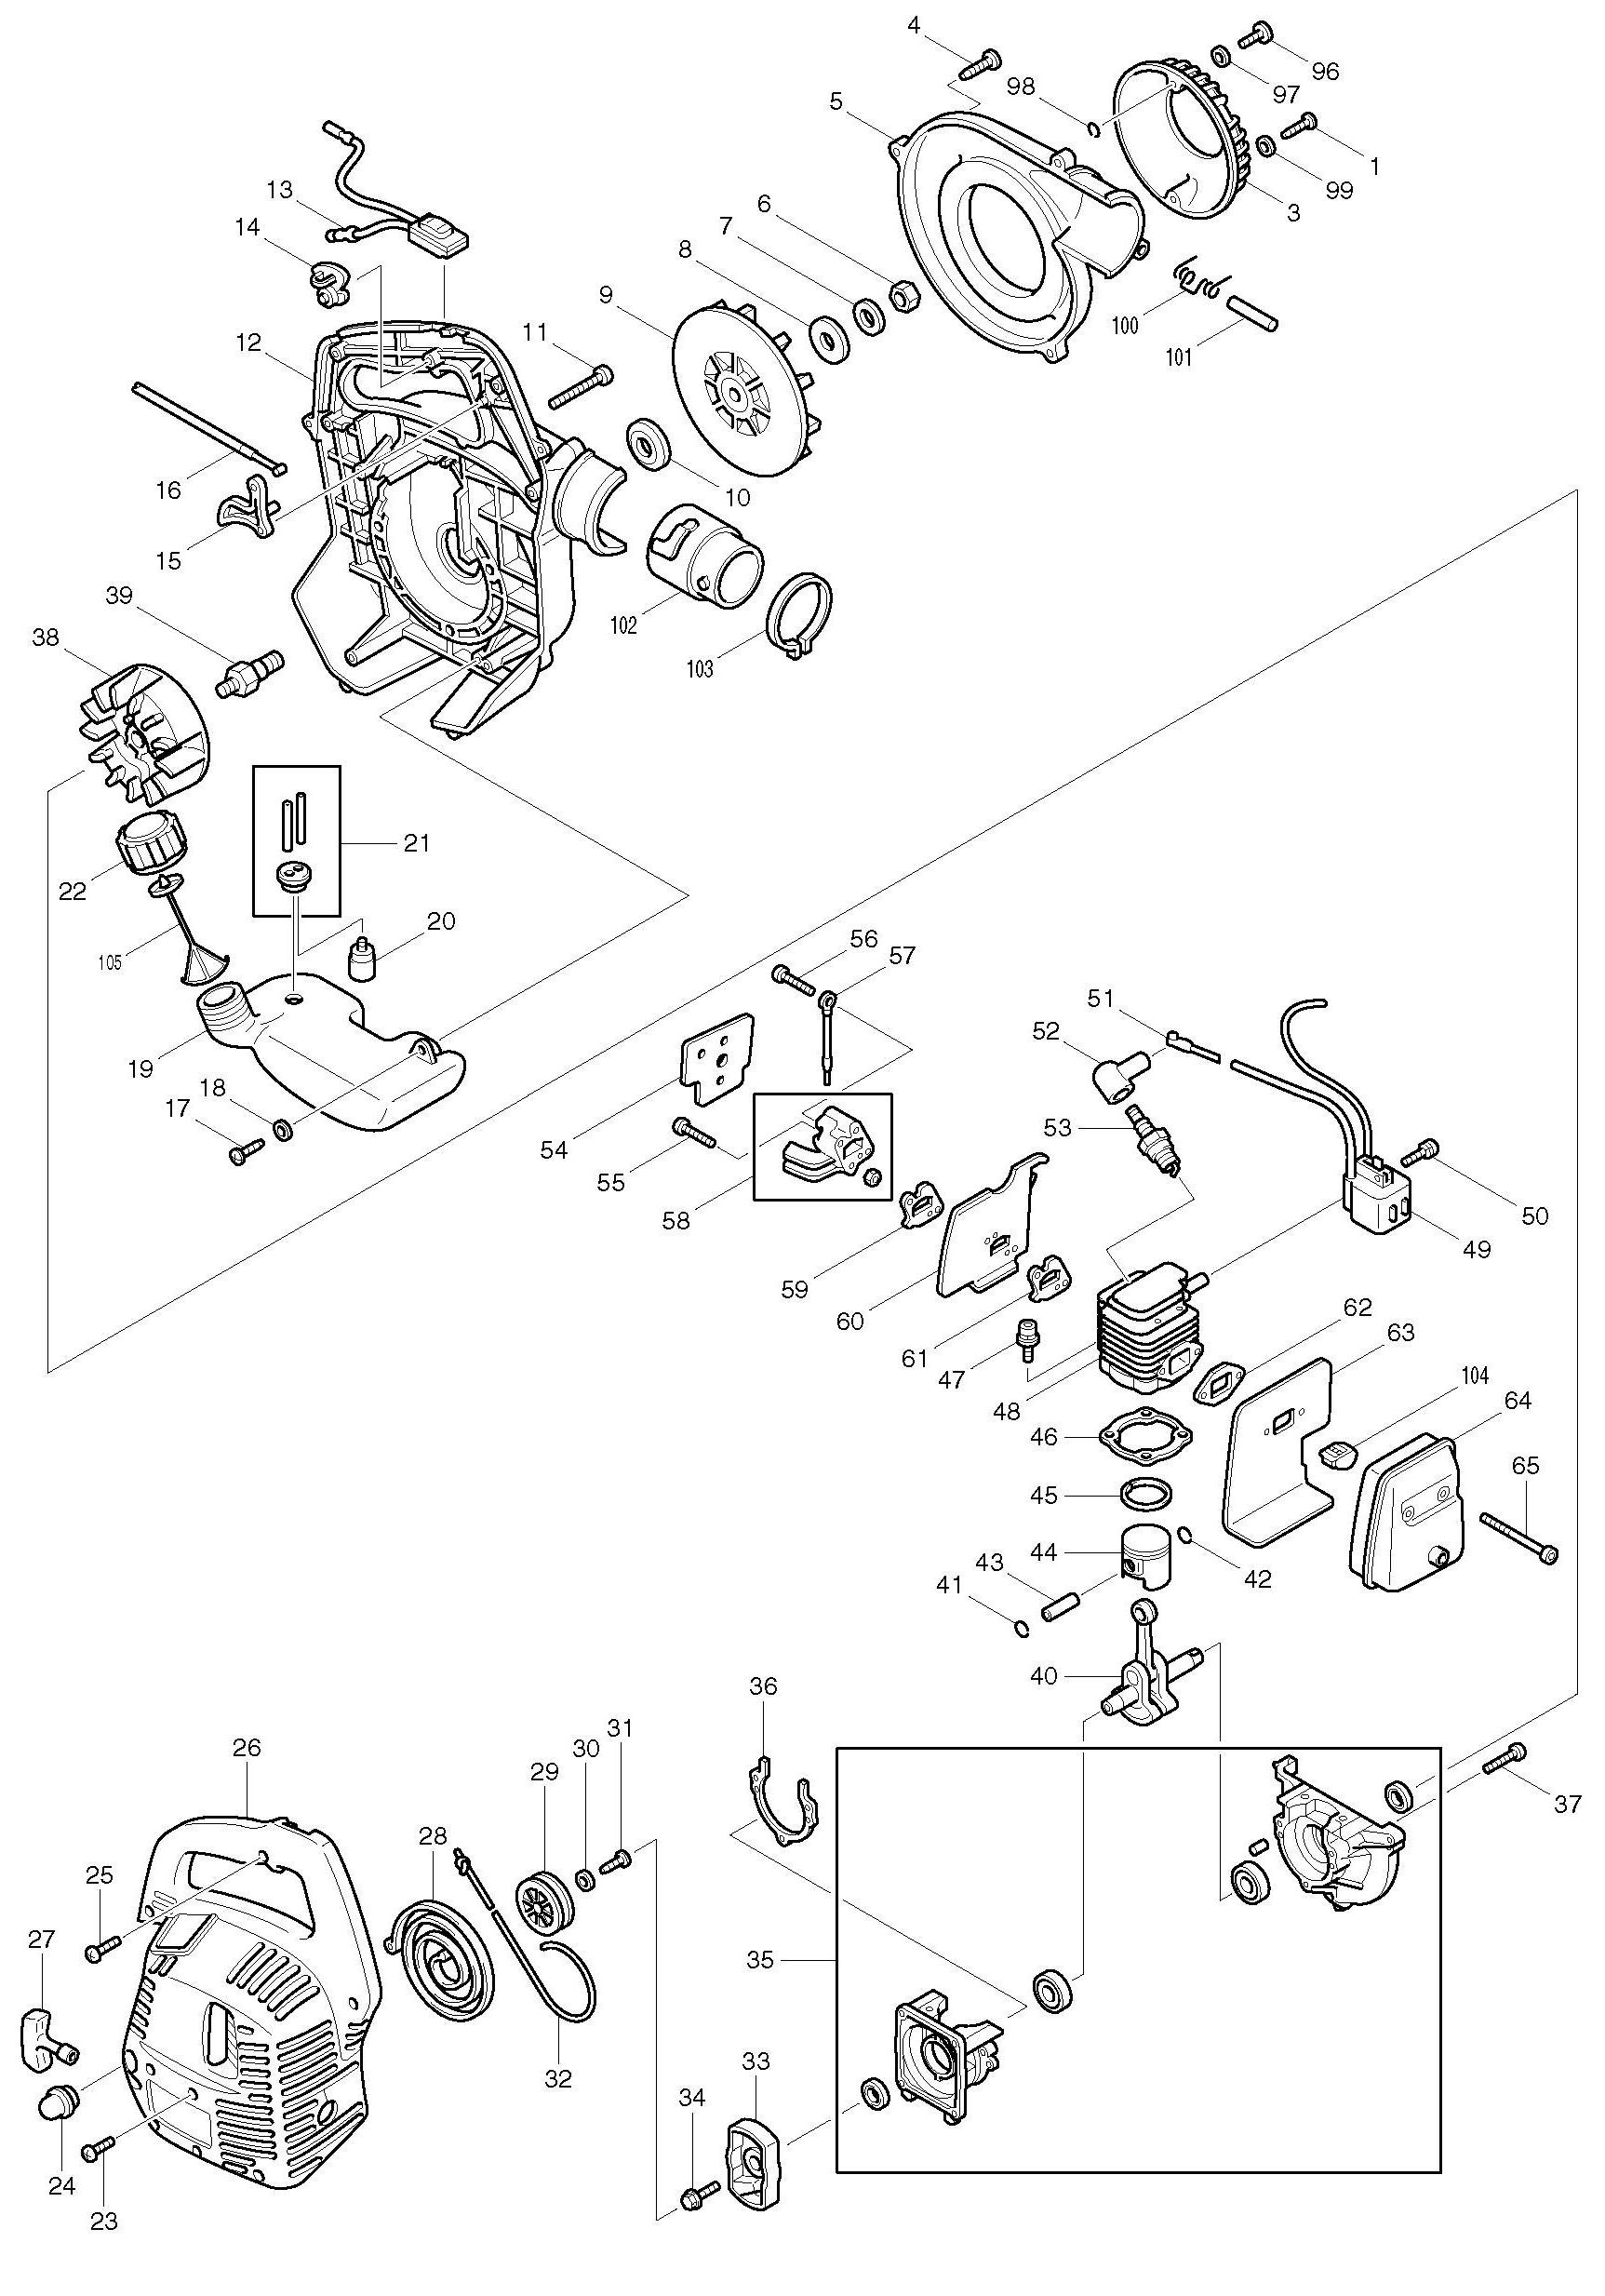 Makita Blower Wiring Diagram | Wiring Liry on